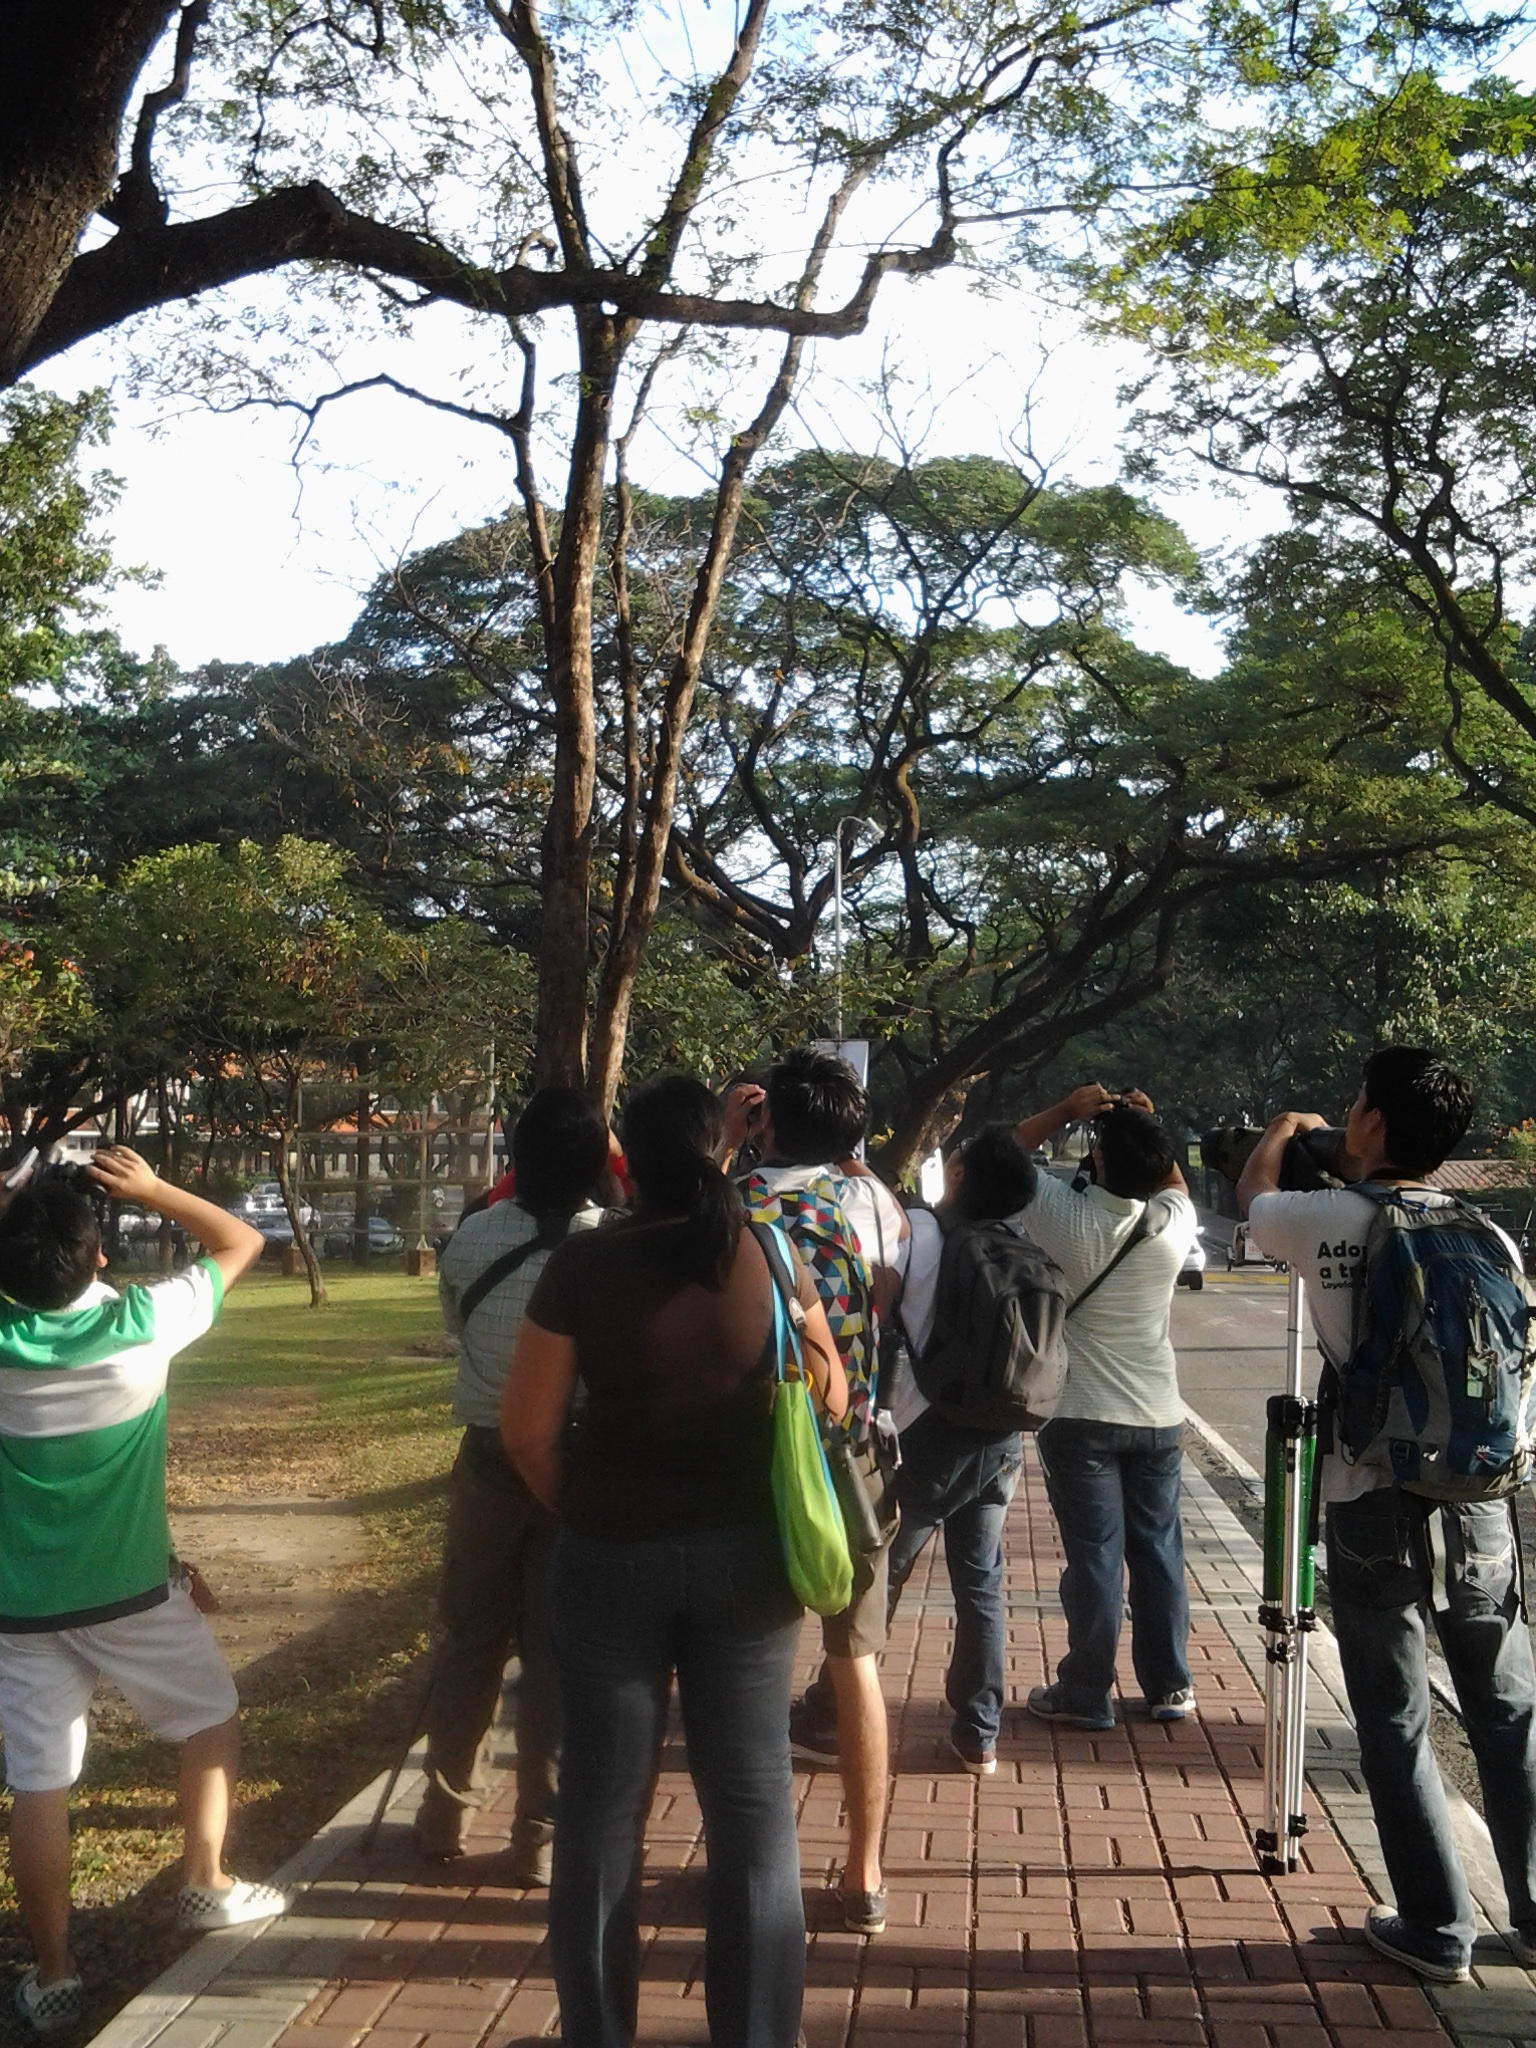 Discovering birds in their campus. Photo by Maia Tanedo